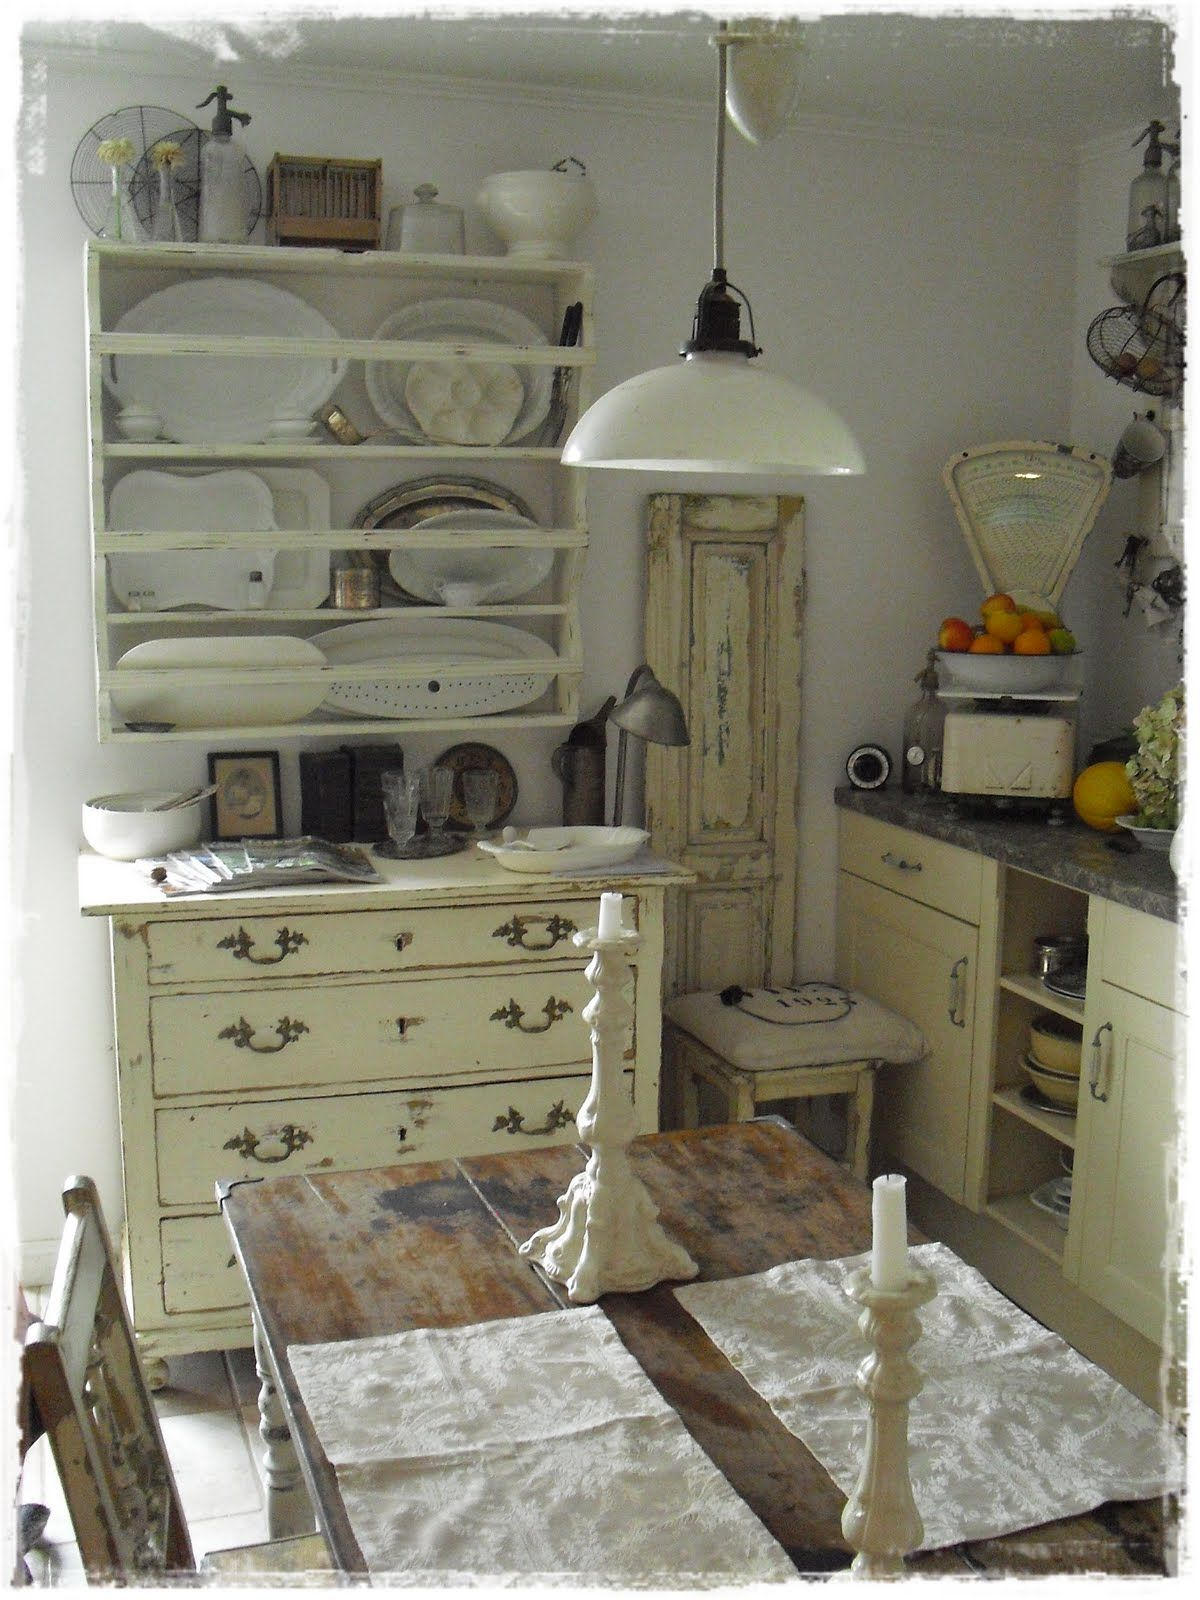 Kitchen whitewashed chippy shabby chic french country rustic swedish